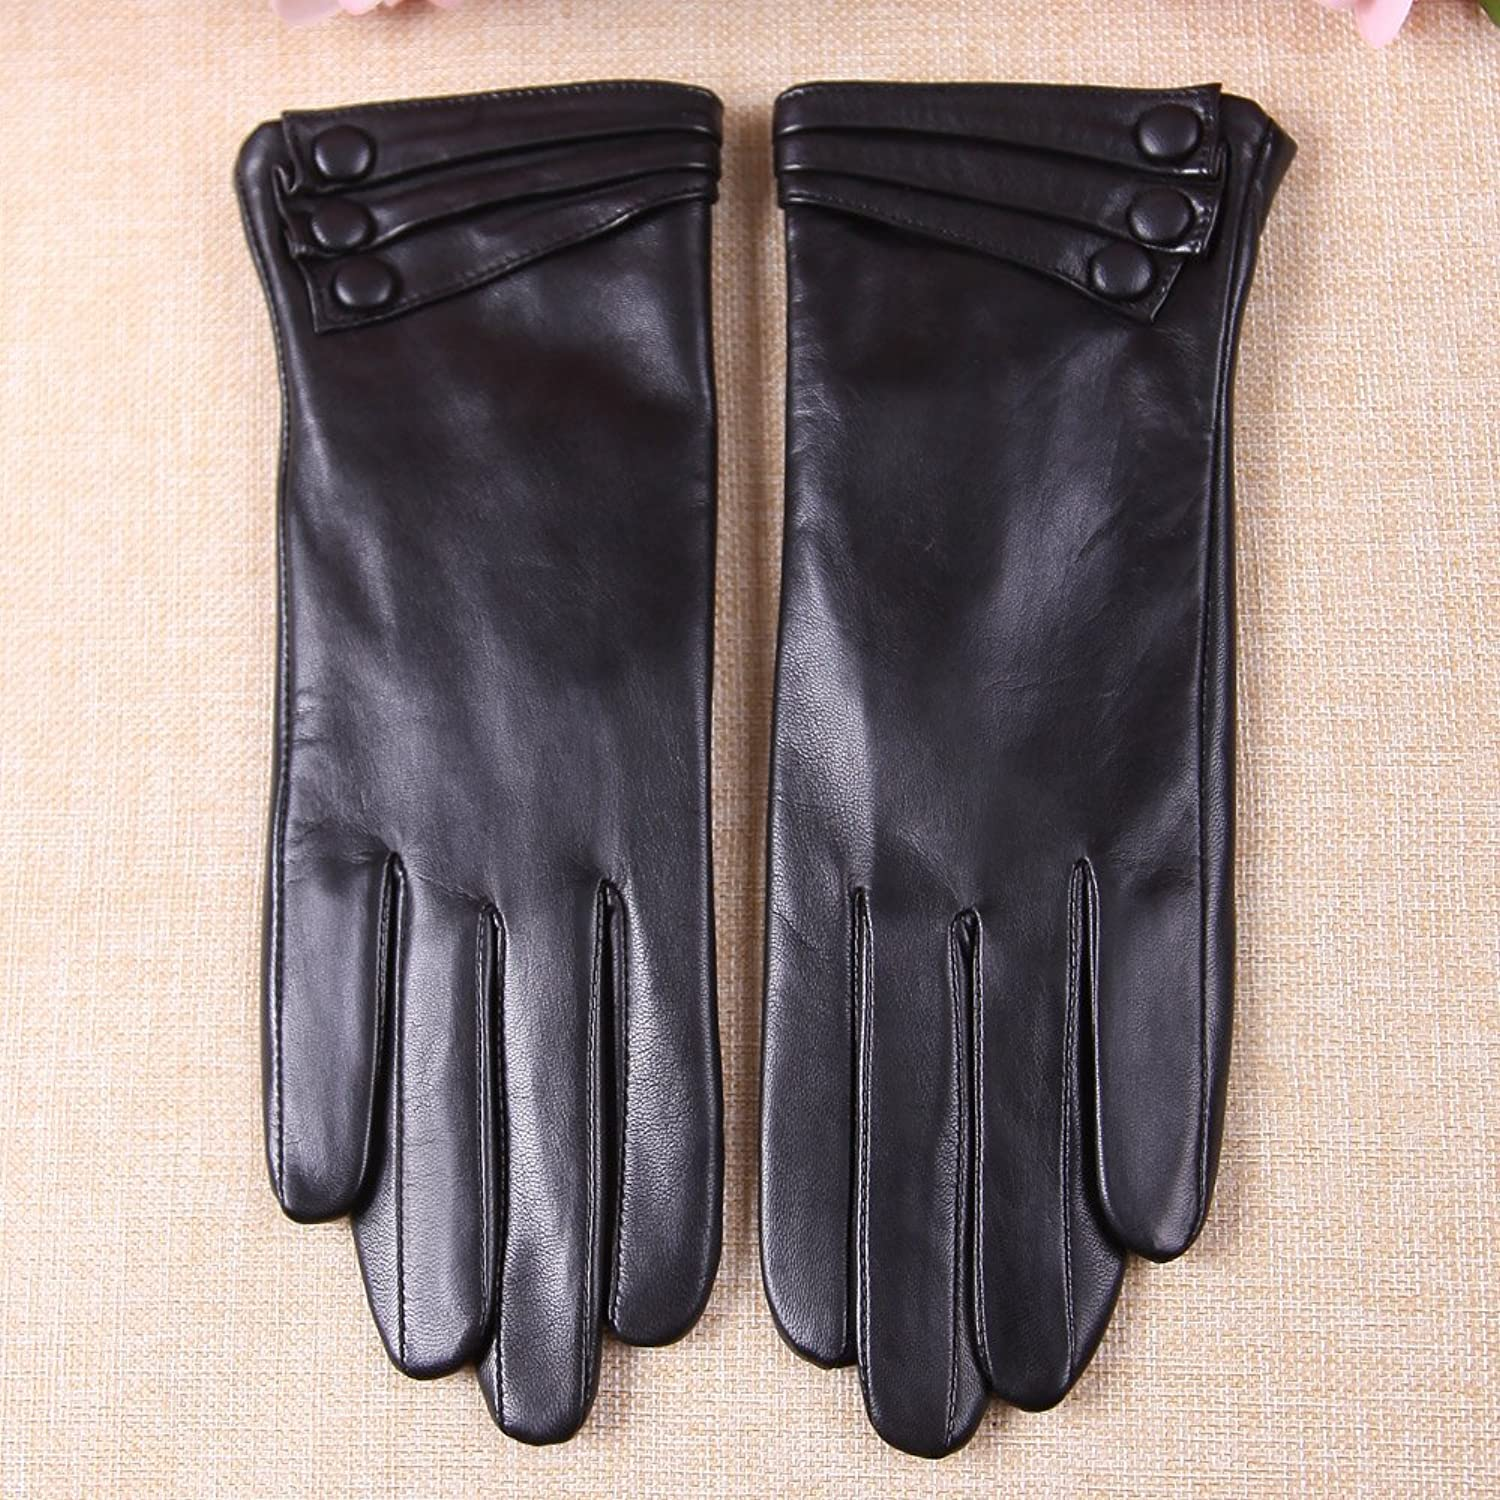 Ladies leather gloves xs - Warmen Women S Touchscreen Texting Driving Winter Warm Nappa Leather Gloves 6 5 Us Standard Size Black Fleece Lining At Amazon Women S Clothing